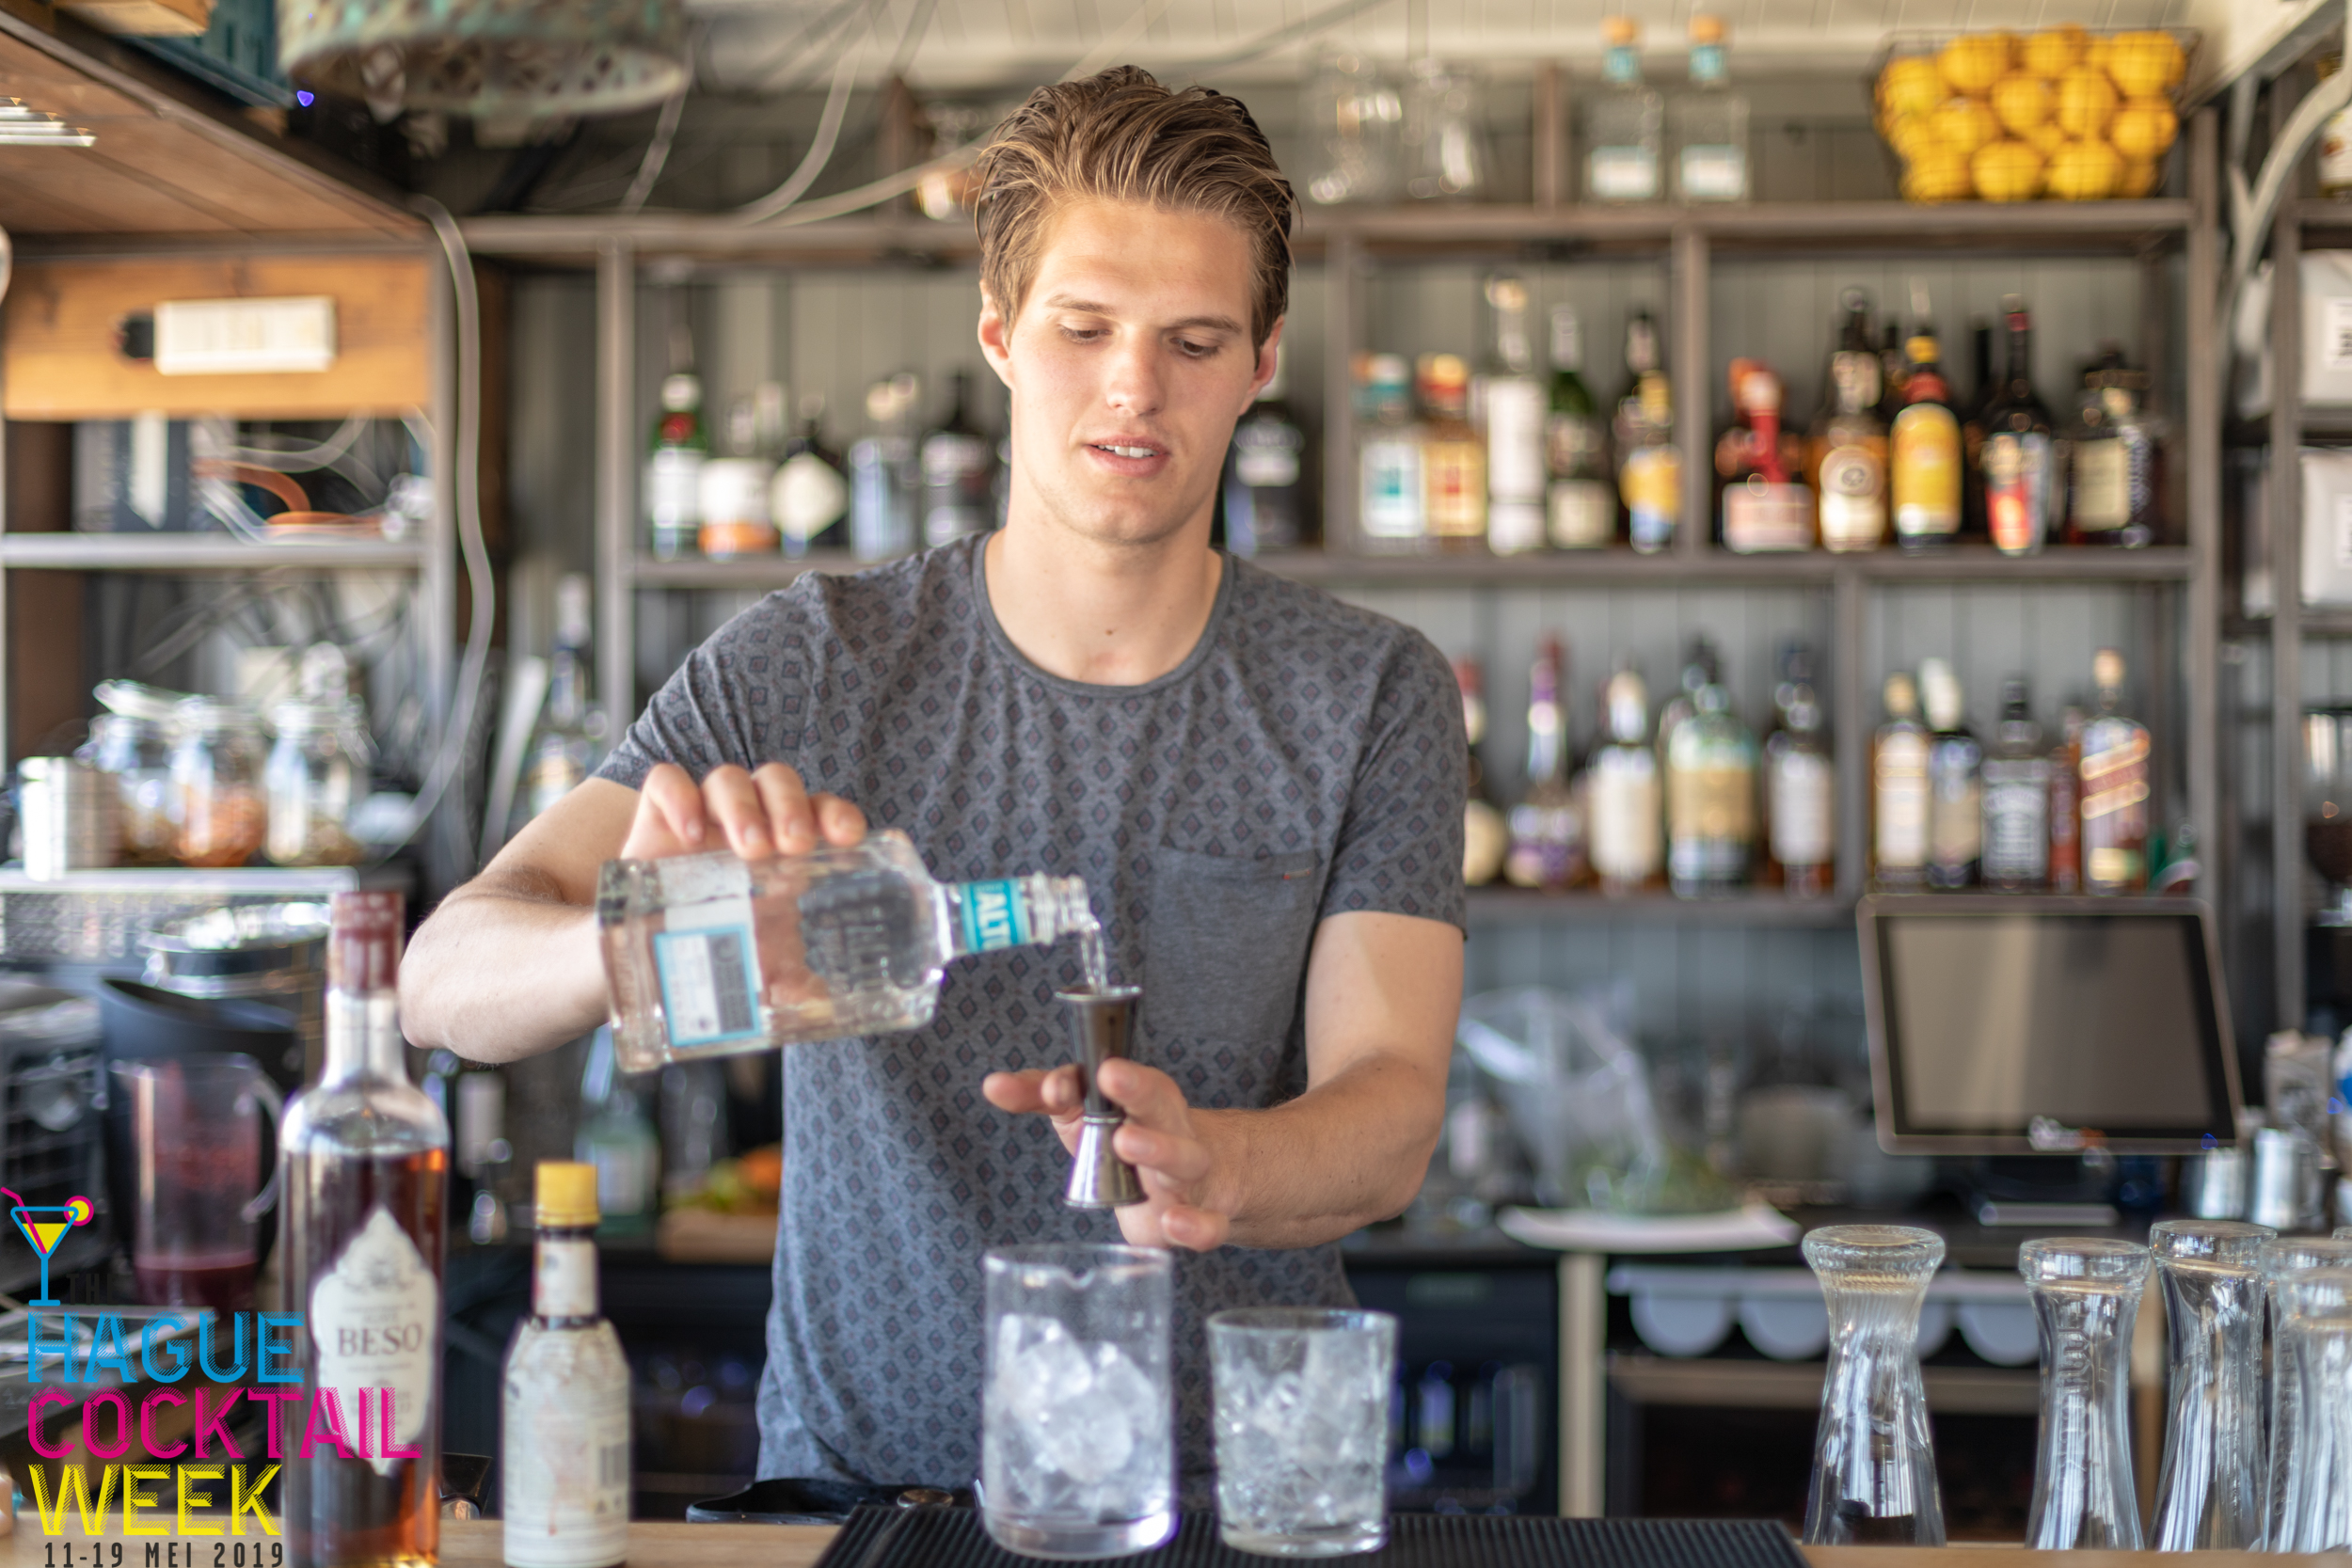 Patagonia Scheveningen | The Hague Cocktailweek